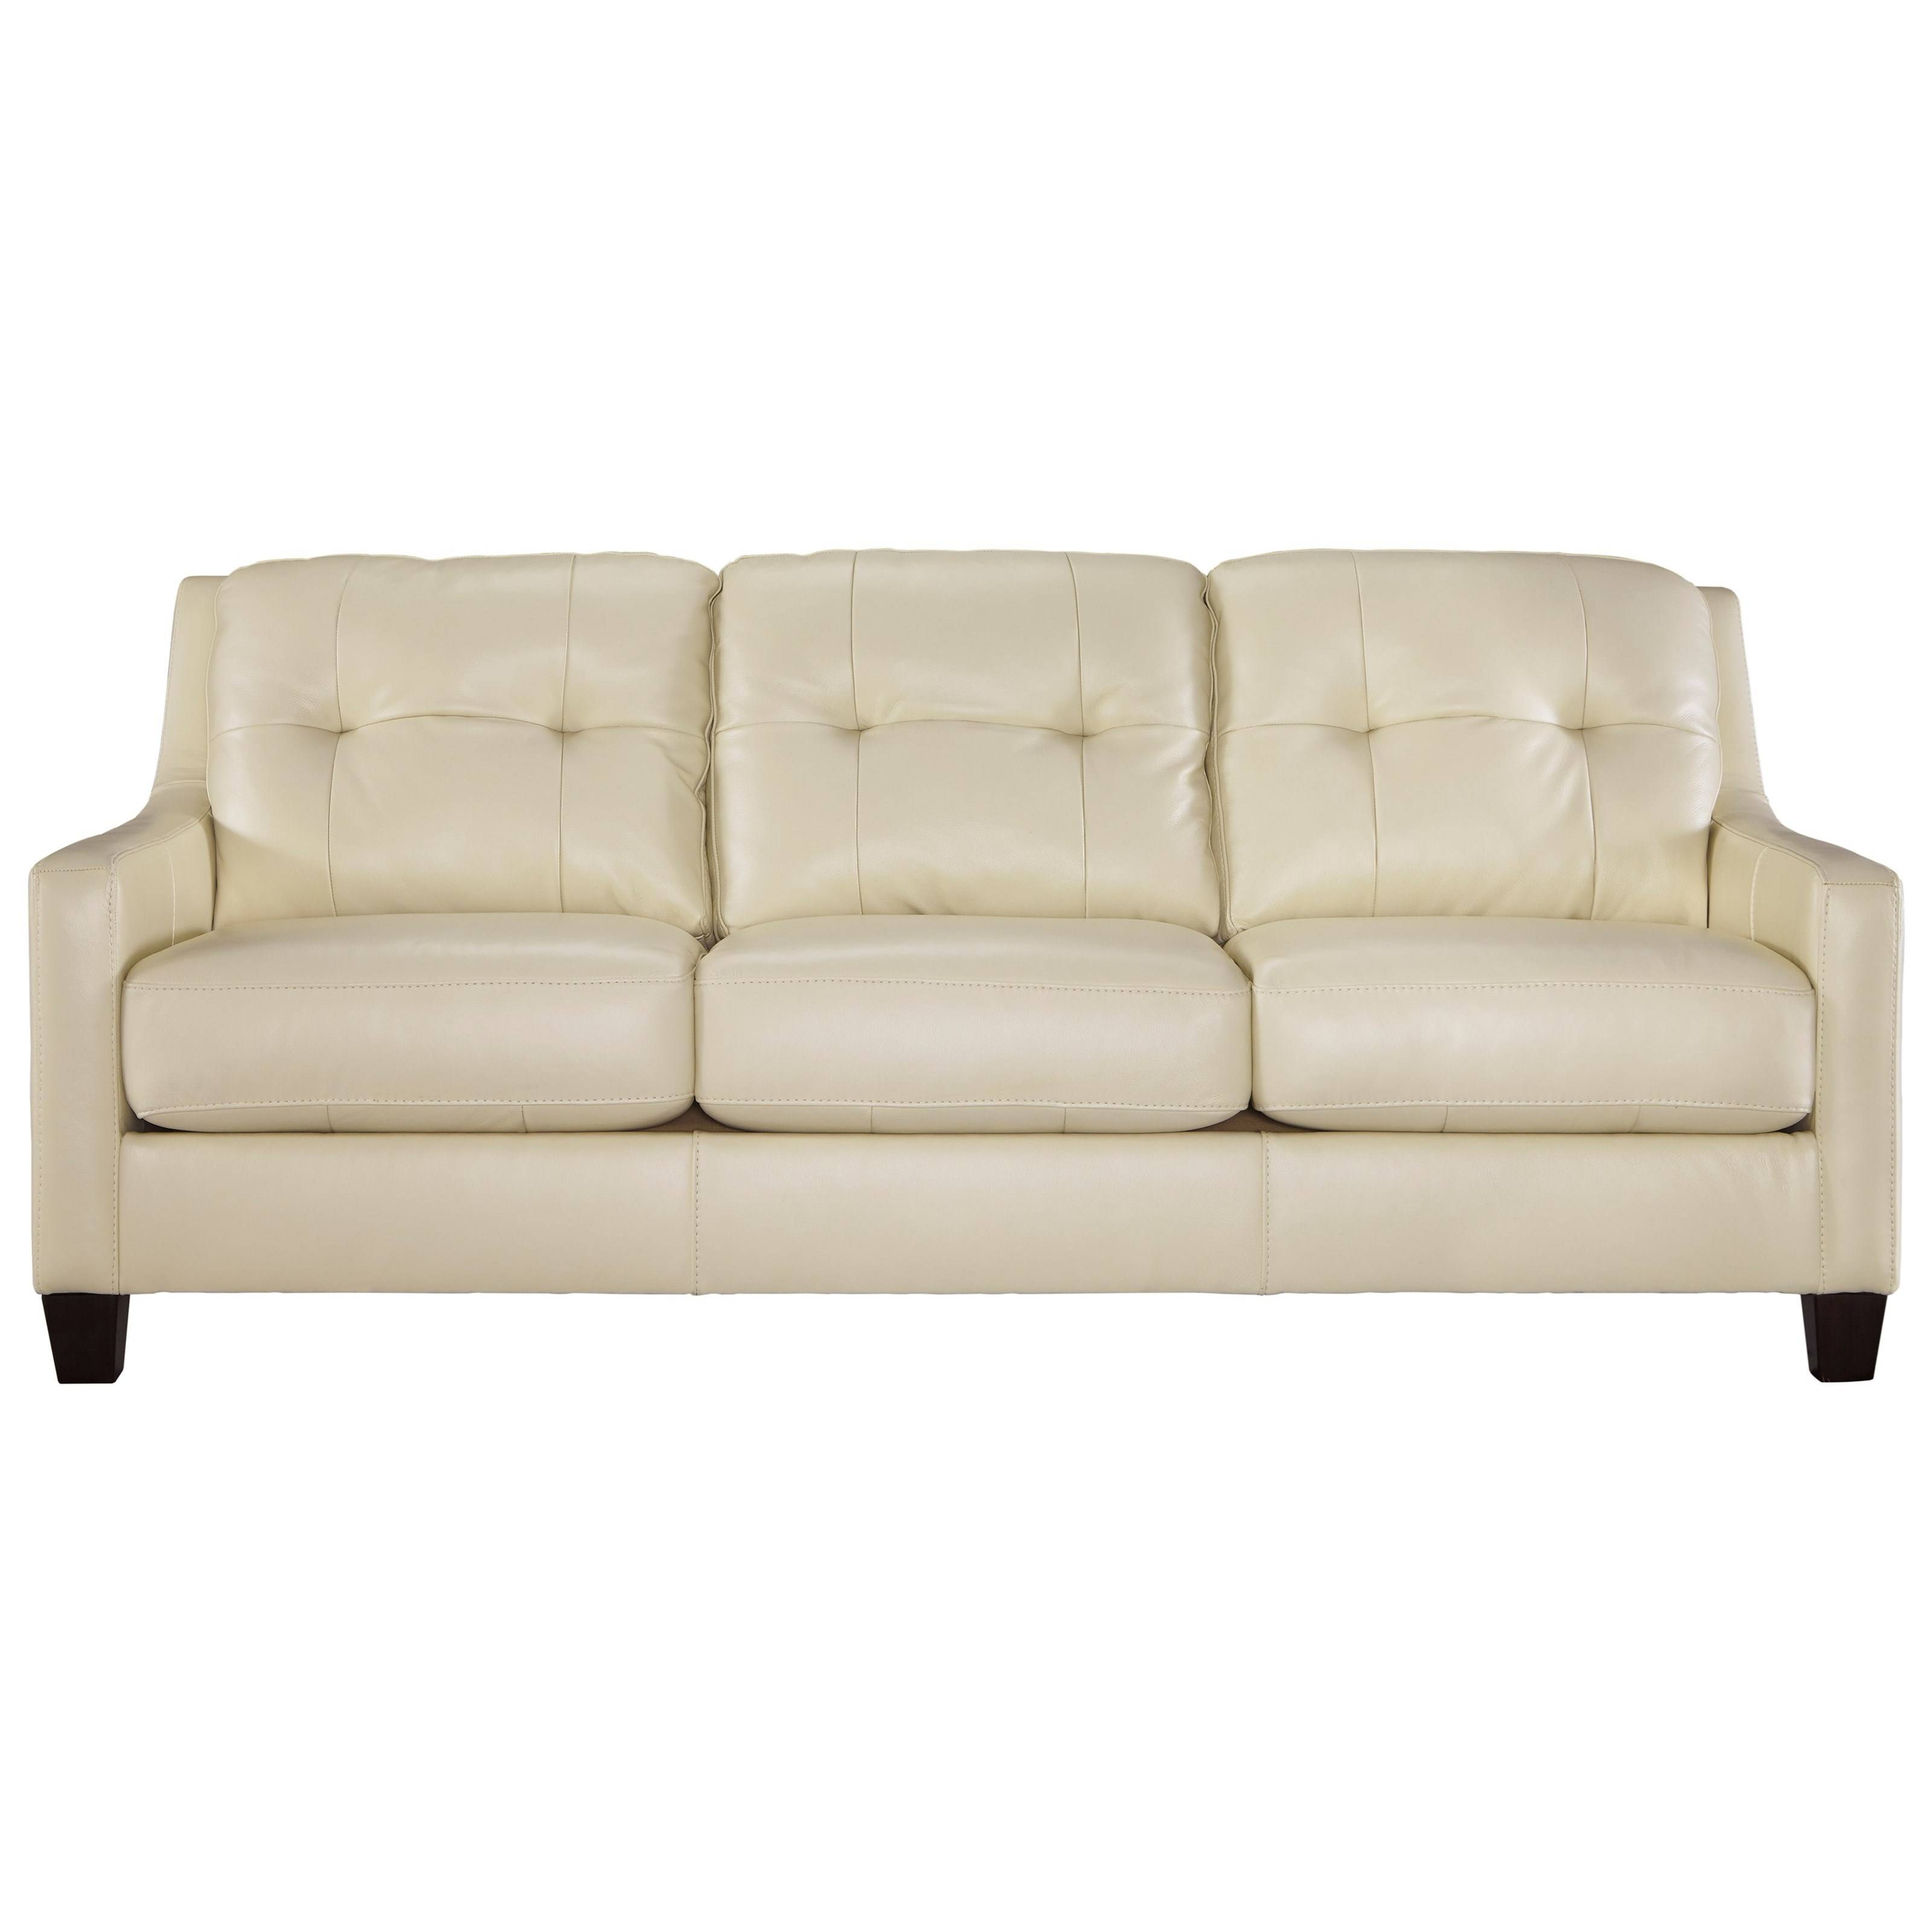 Signature Designashley O'kean Contemporary Leather Match Sofa intended for Ashley Tufted Sofa (Image 20 of 30)